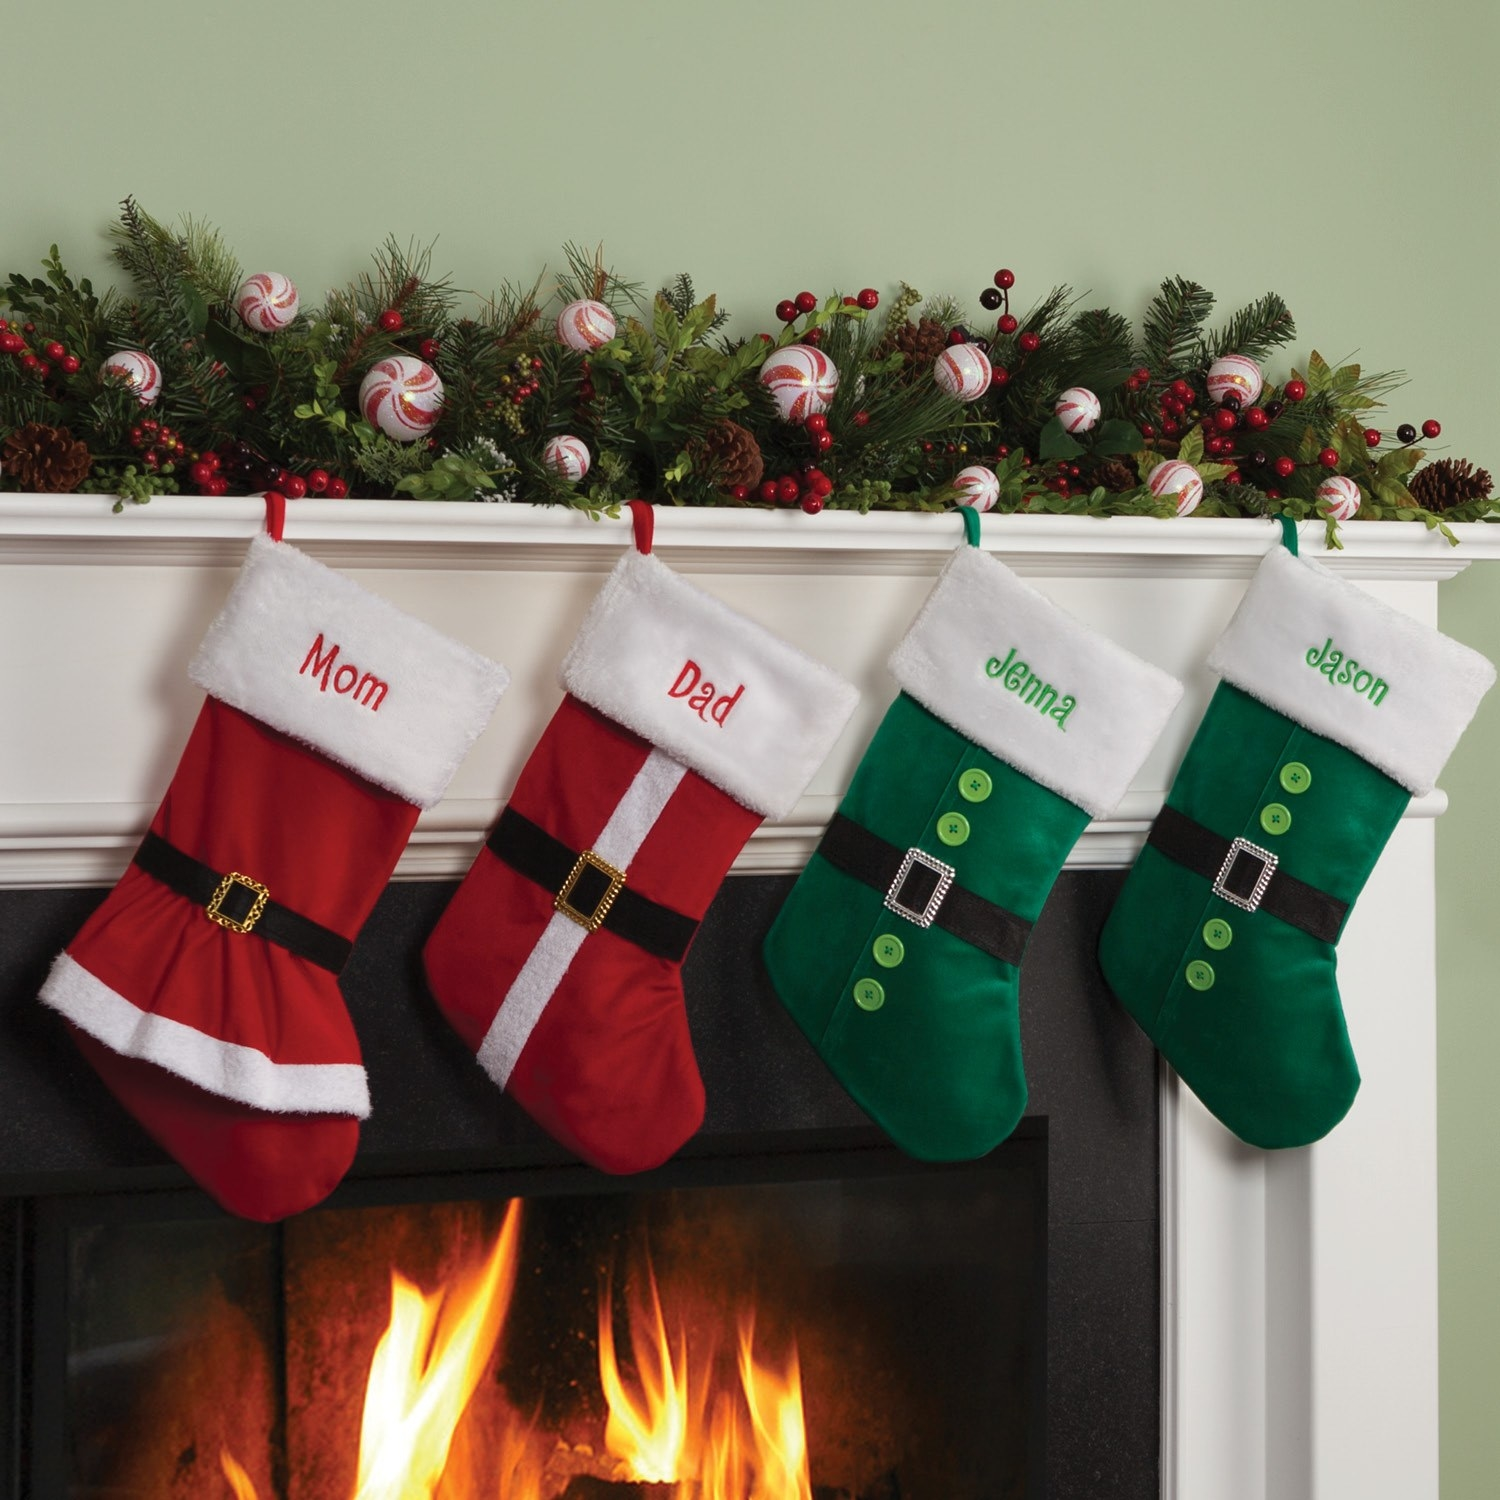 Four personalized stockings in different red and green styles above a fireplace